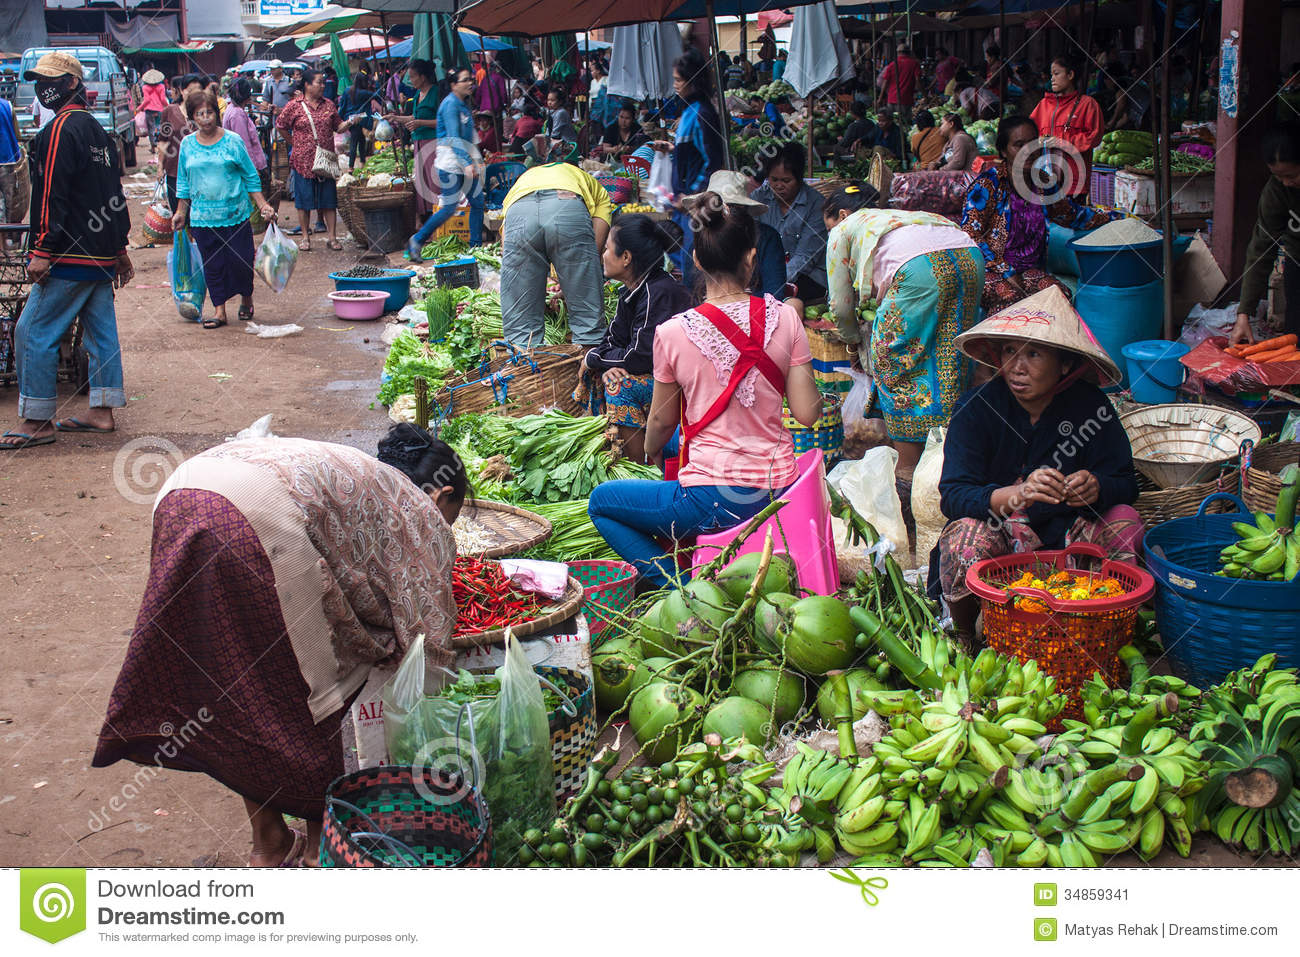 Pakse Laos  city images : PAKSE, LAOS SEP 13: View of a market in Pakse, Laos on Sep 13, 2013 ...